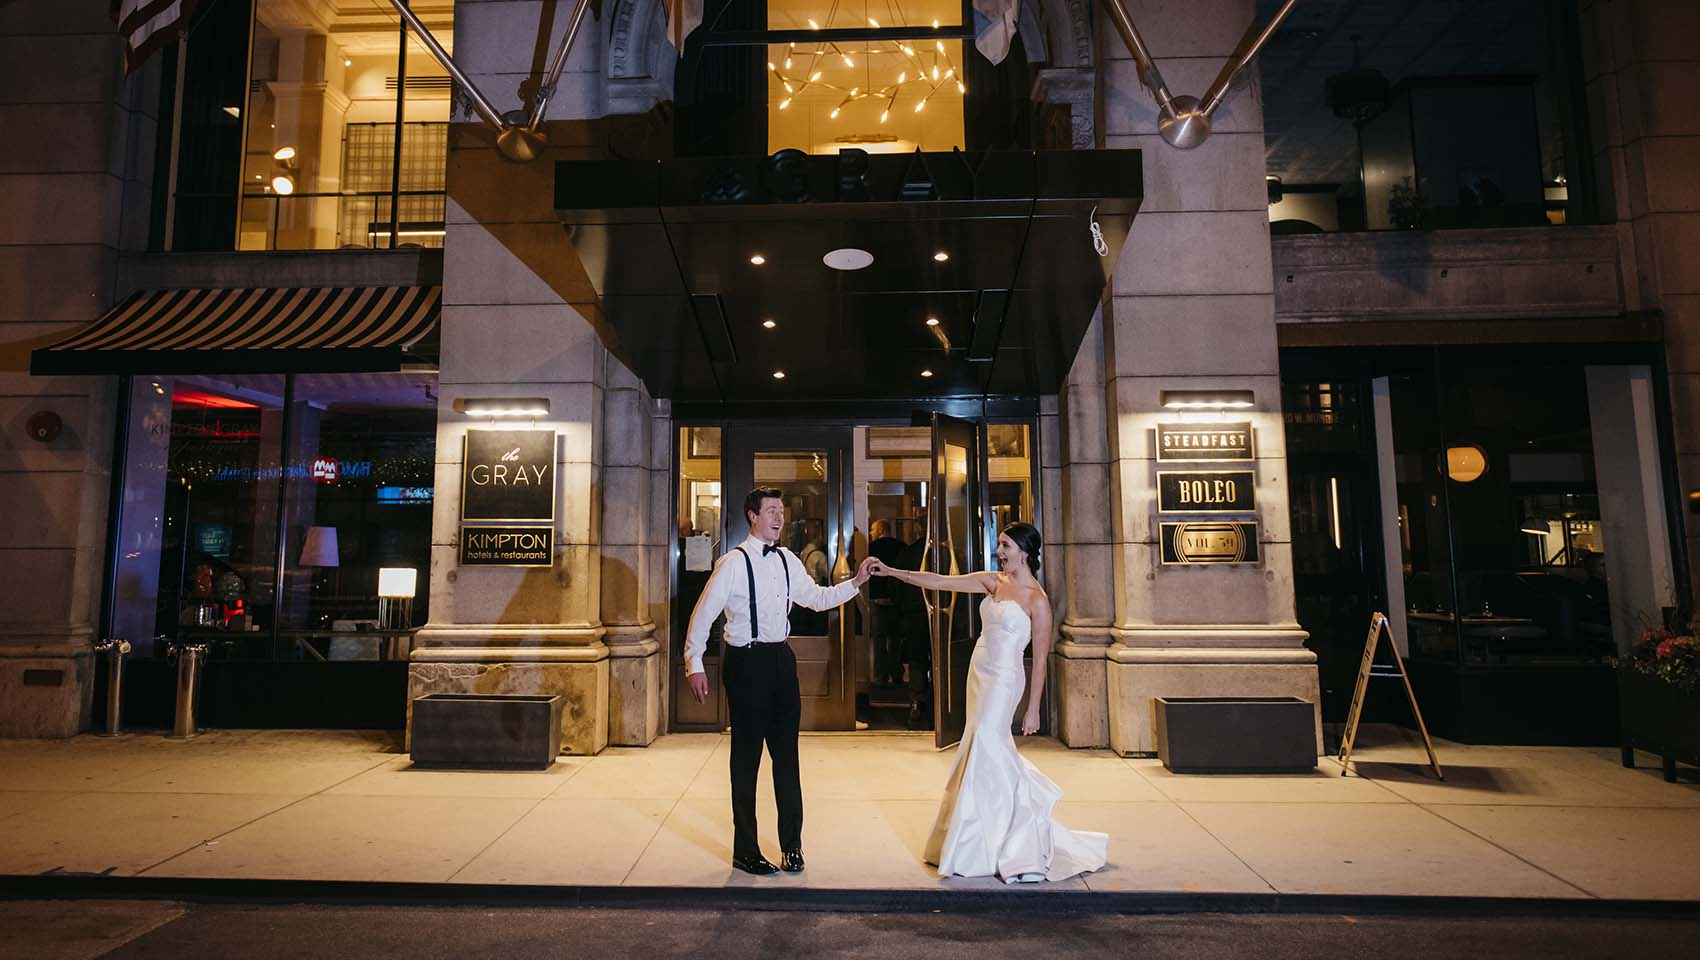 Kimpton Real Weddings: Kimpton Gray Hotel